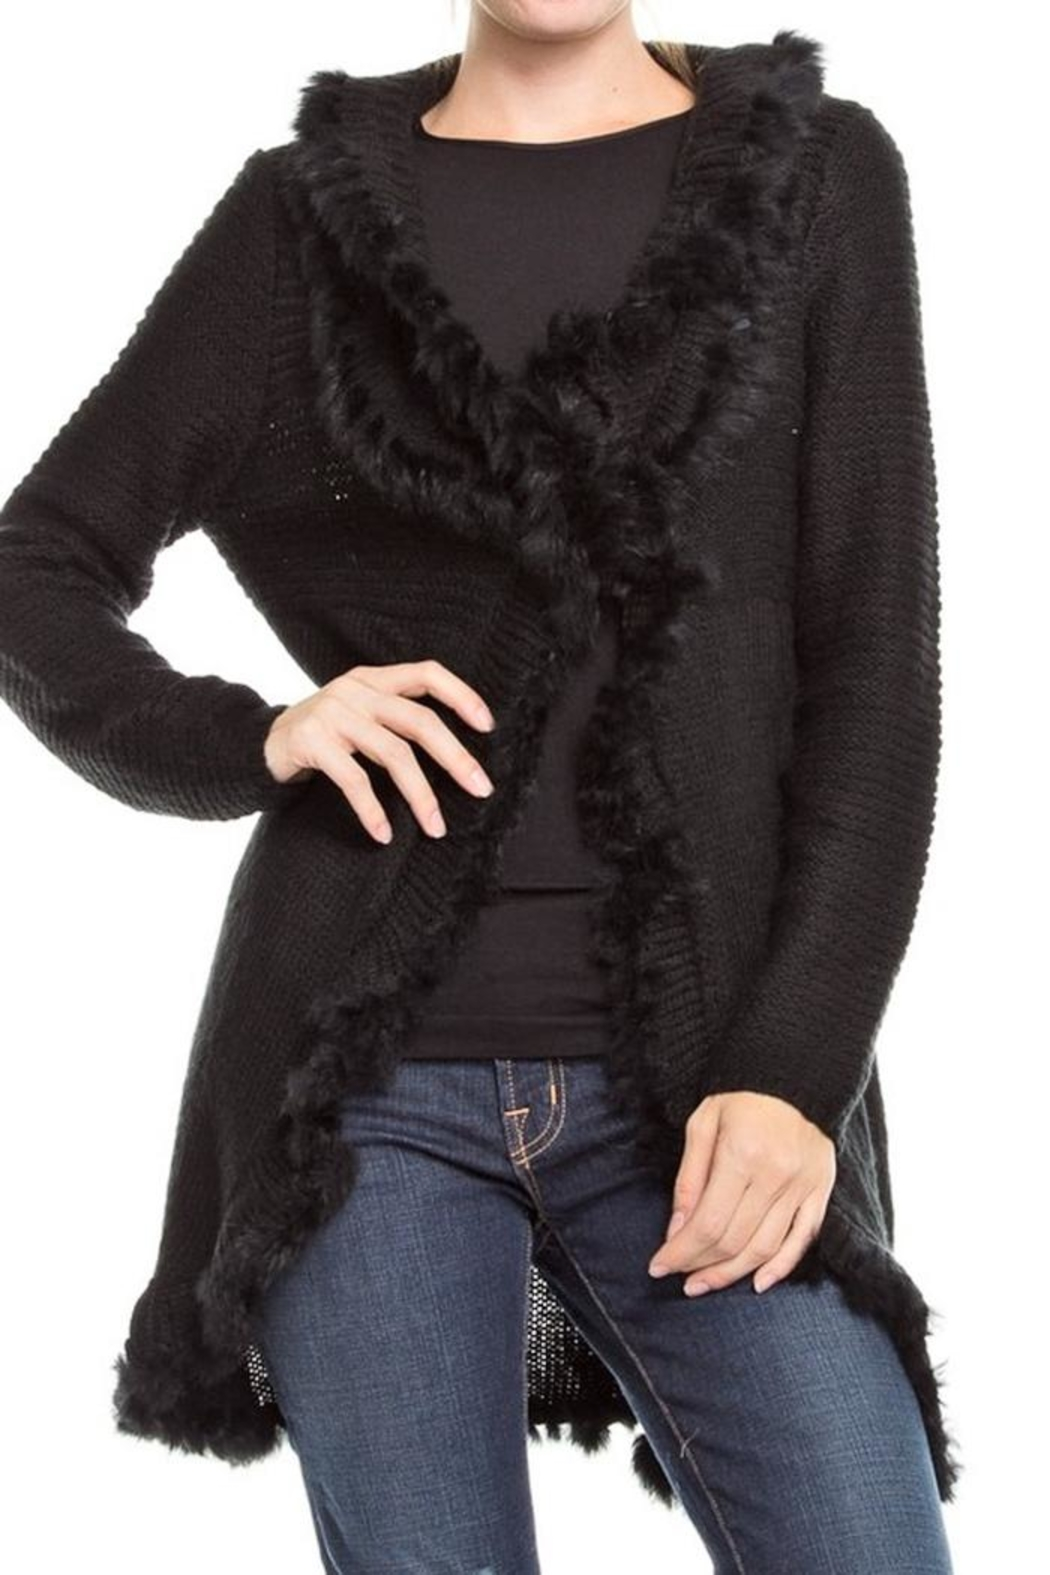 People Outfitter Fur Trim Cardigan - Main Image